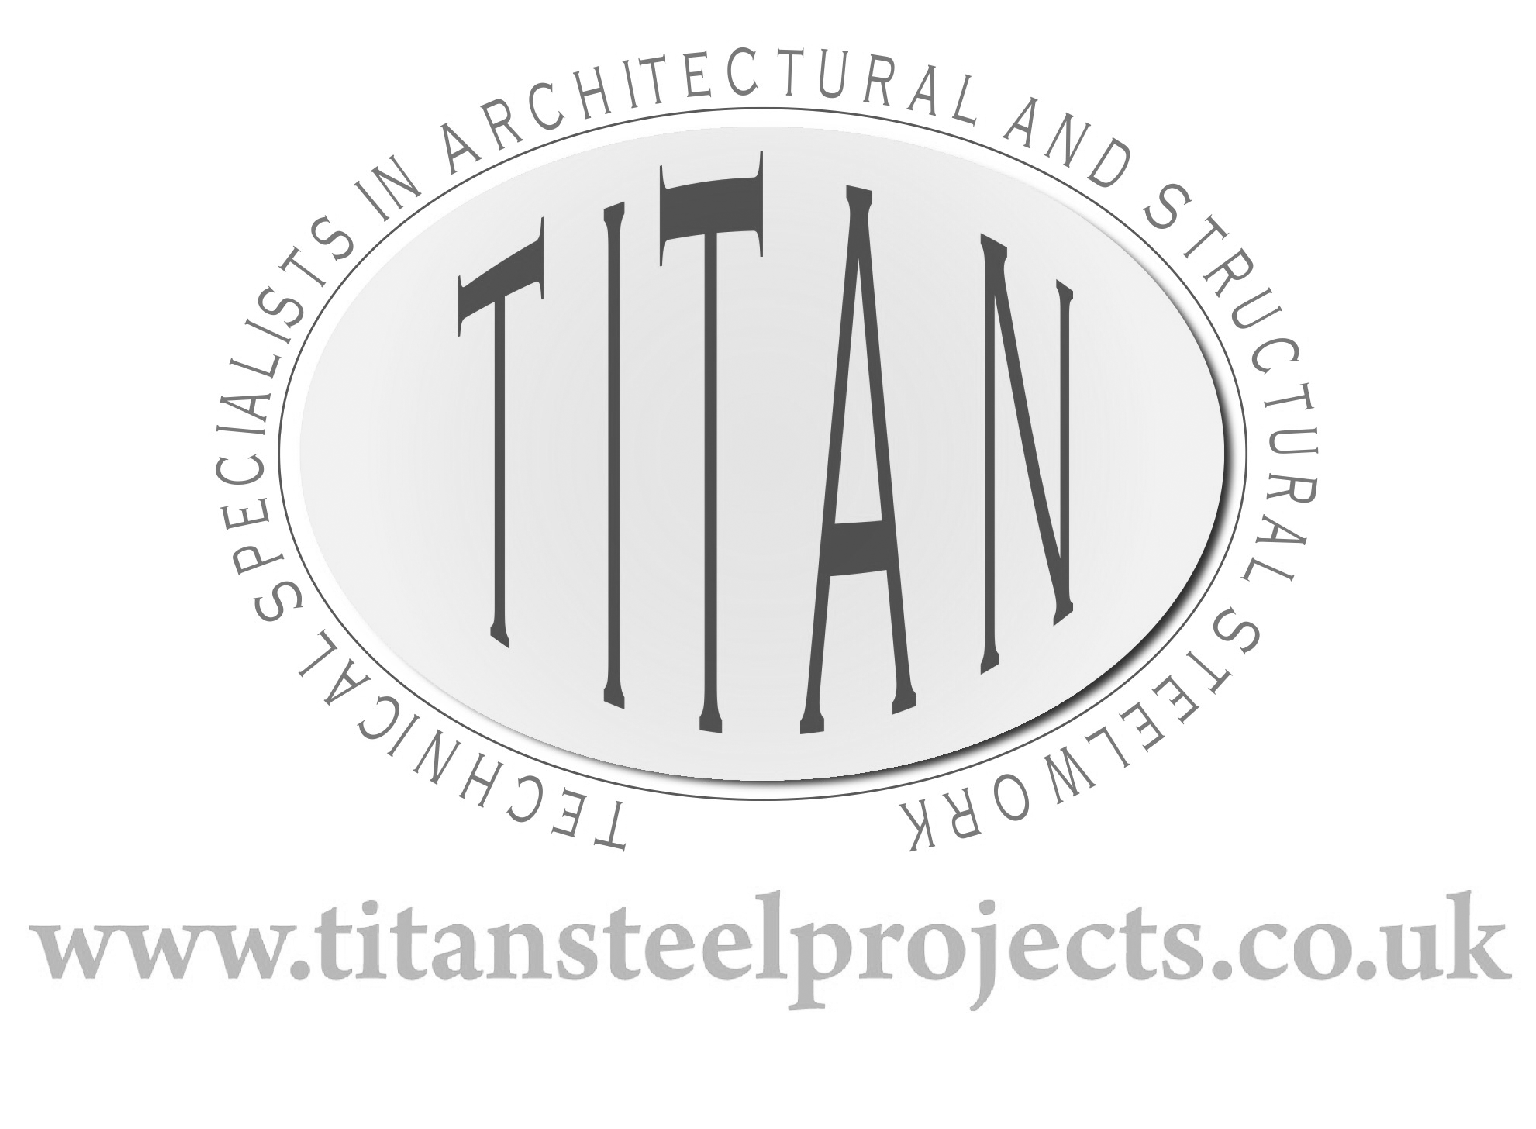 We're sponsored by Titan Steel Projects